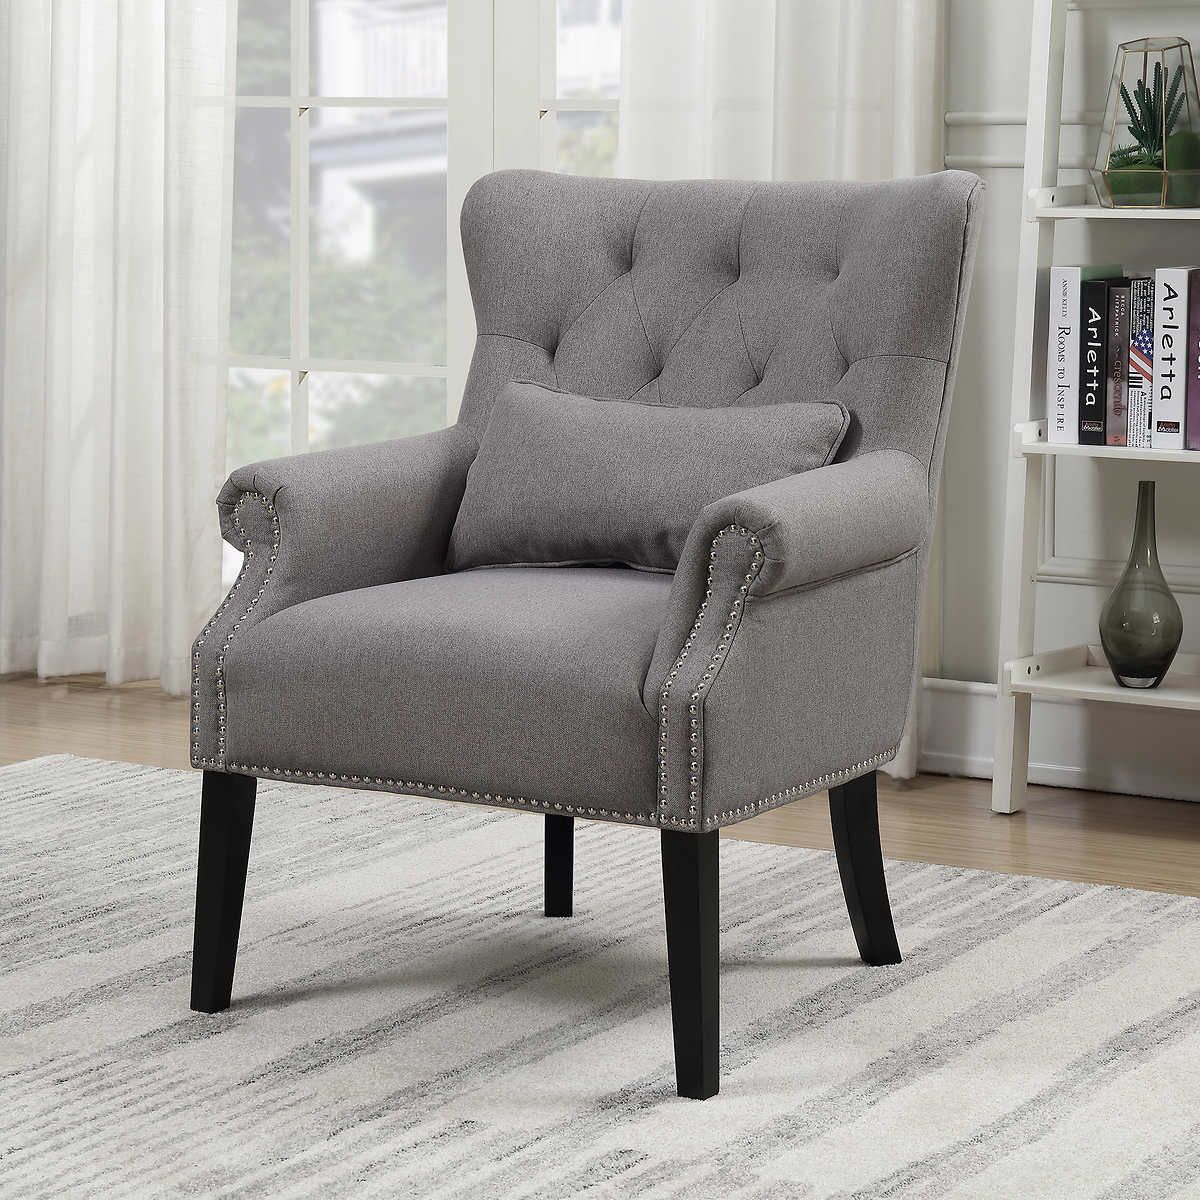 Costco Accent Chair Gray 300 Fabric Accent Chair Blue